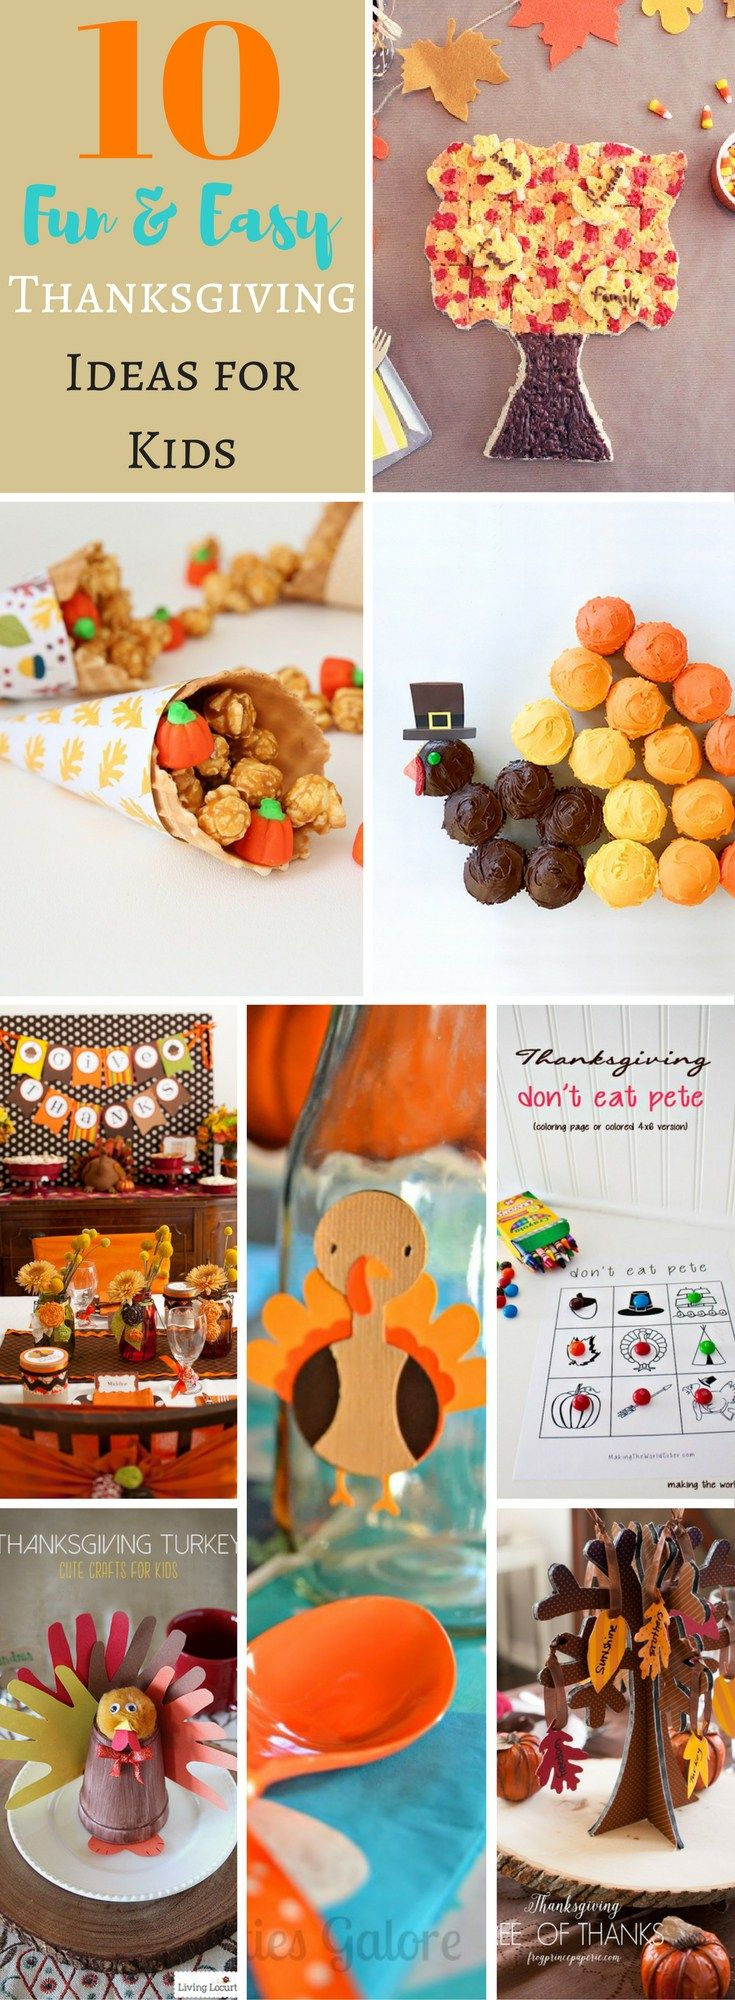 You're going to want to sit at the Kids' table this year with these 10 clever and fun Thanksgiving ideas! Treats, decor and more!